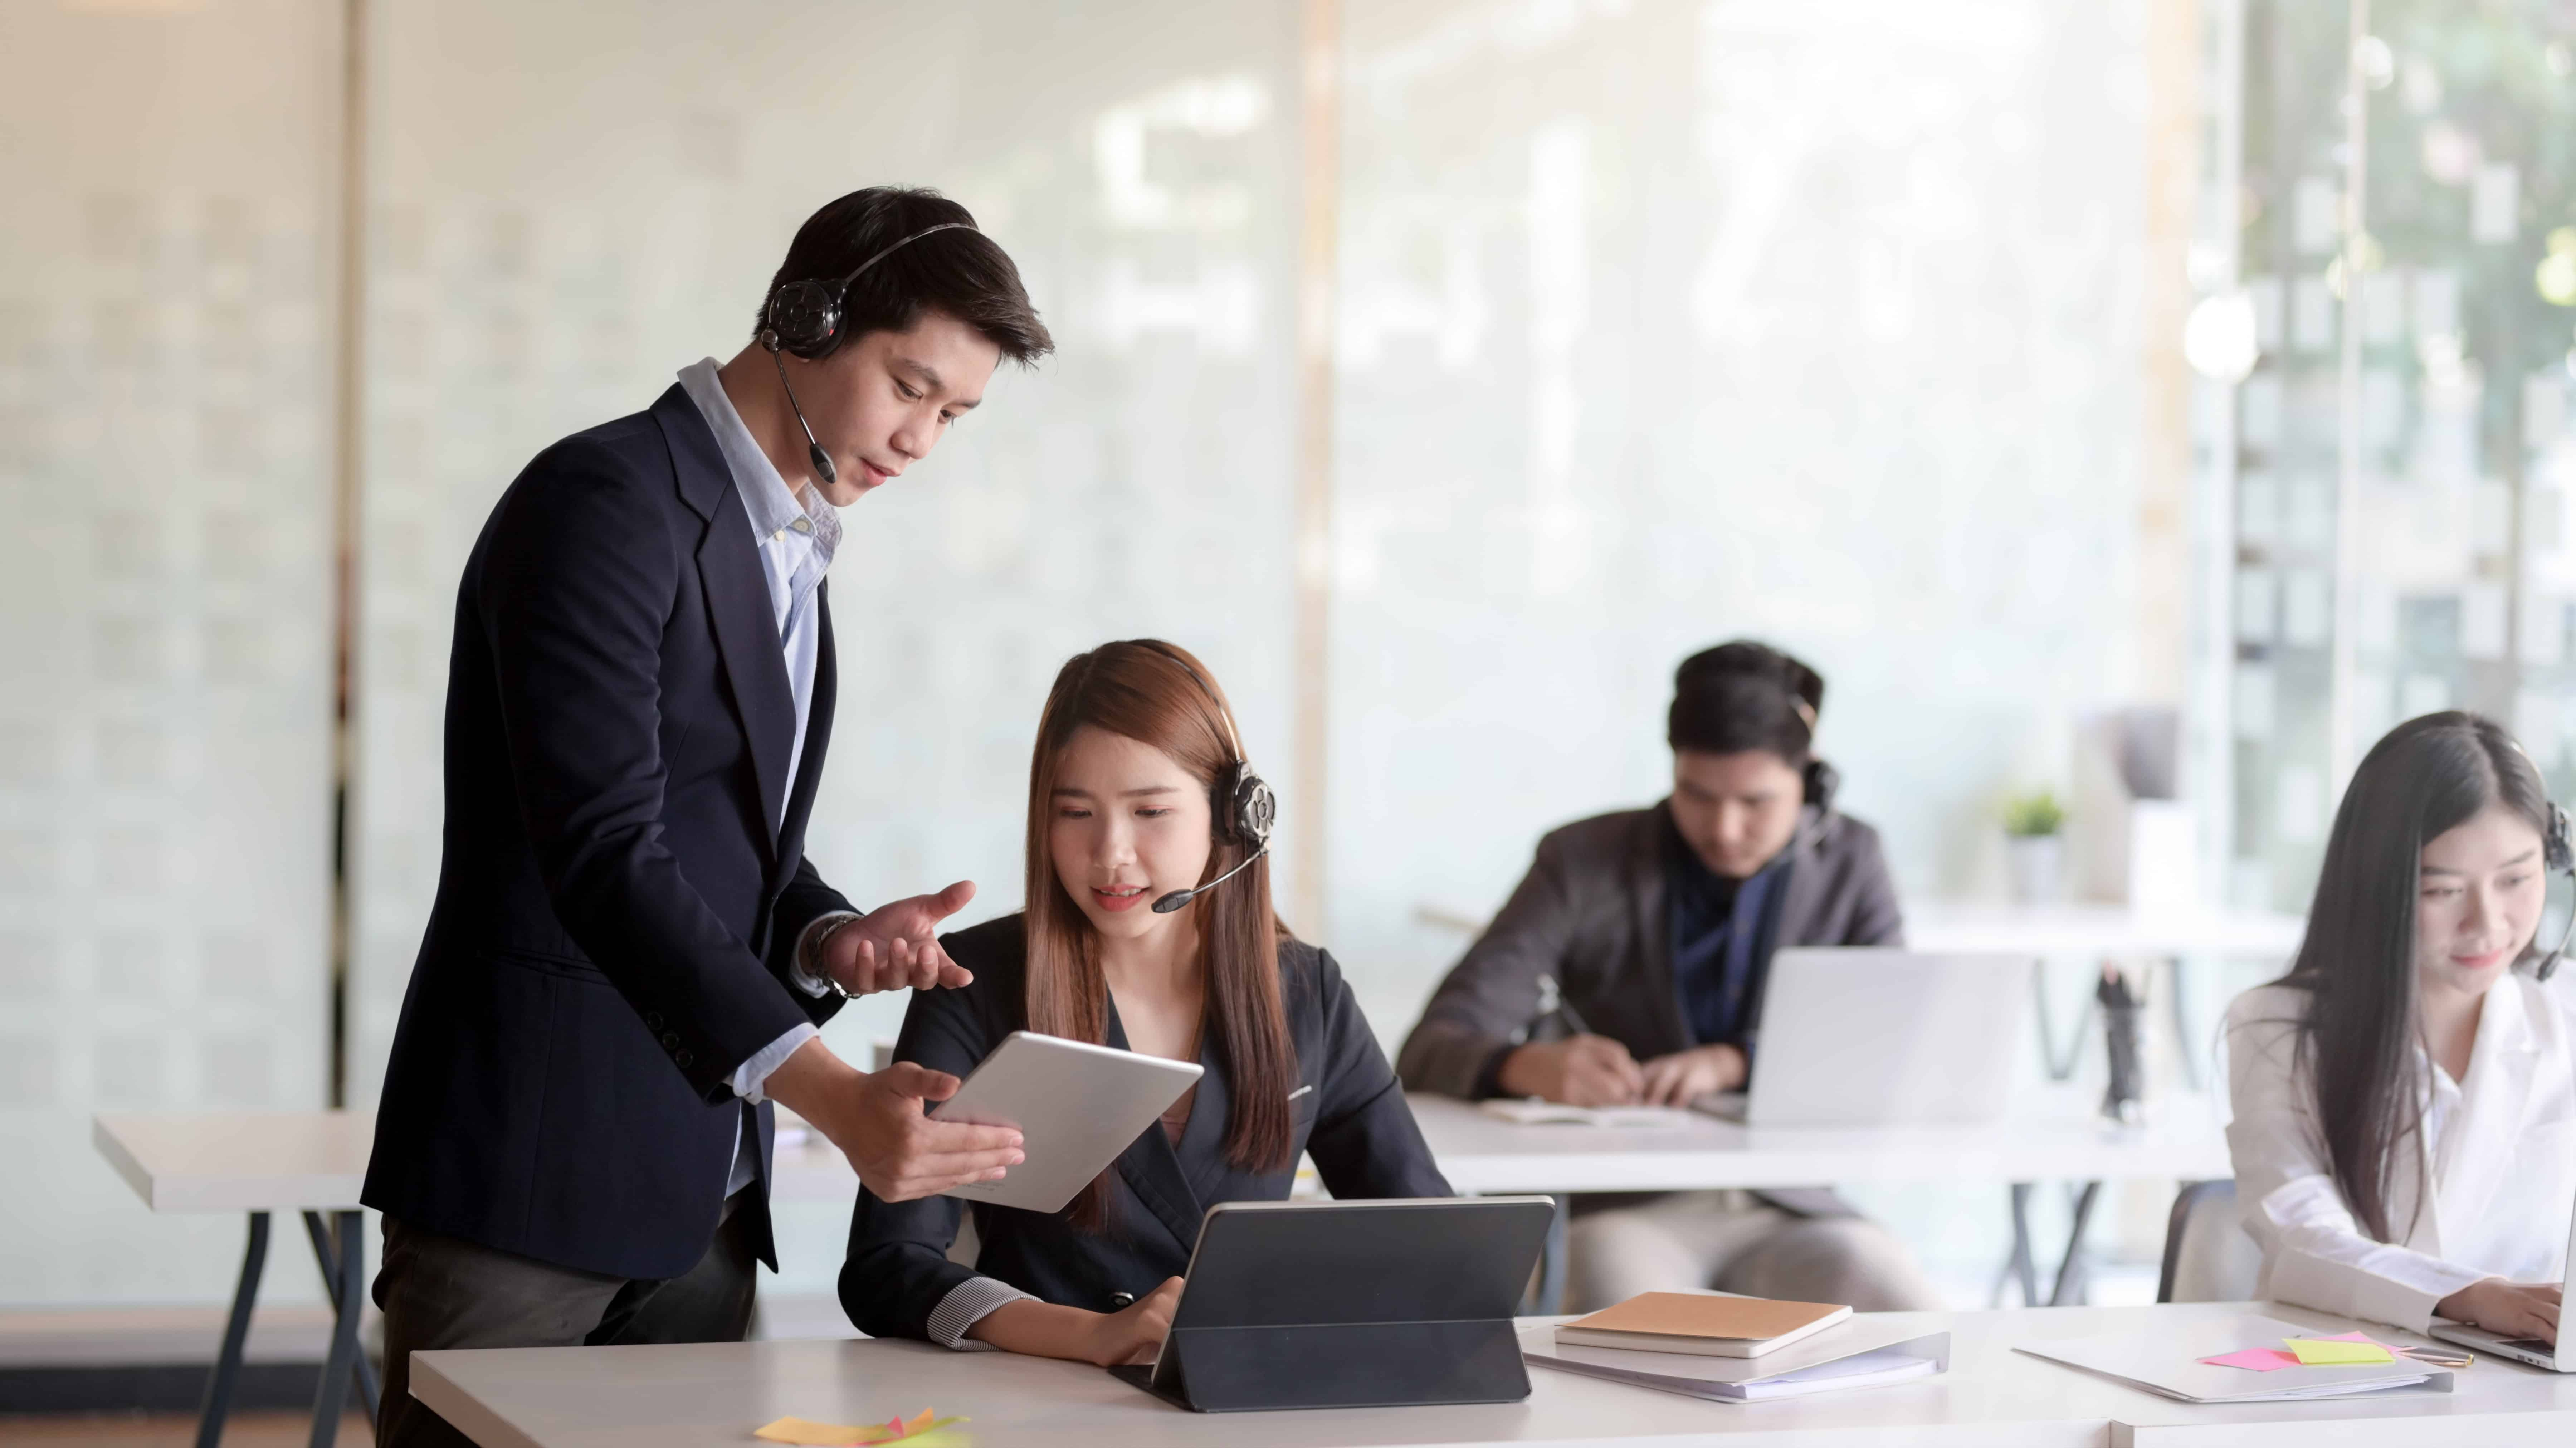 Why Customer Service Training Is Important for Employees